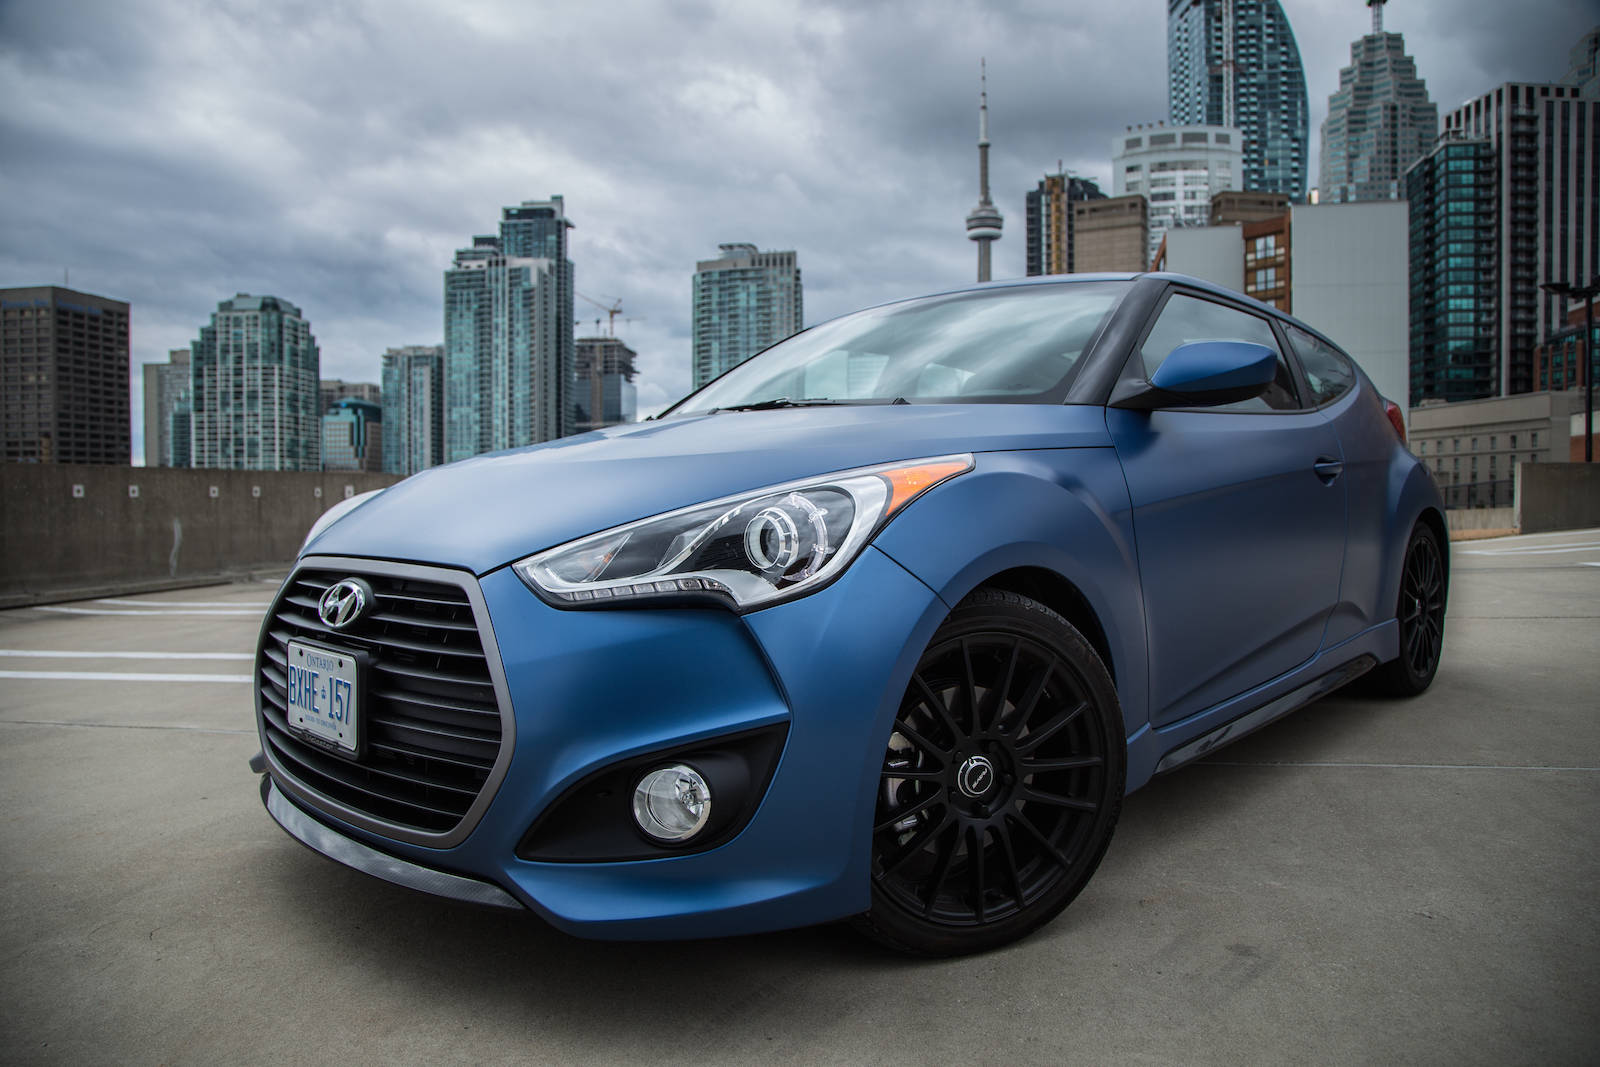 Review 2016 Hyundai Veloster Turbo Rally Edition